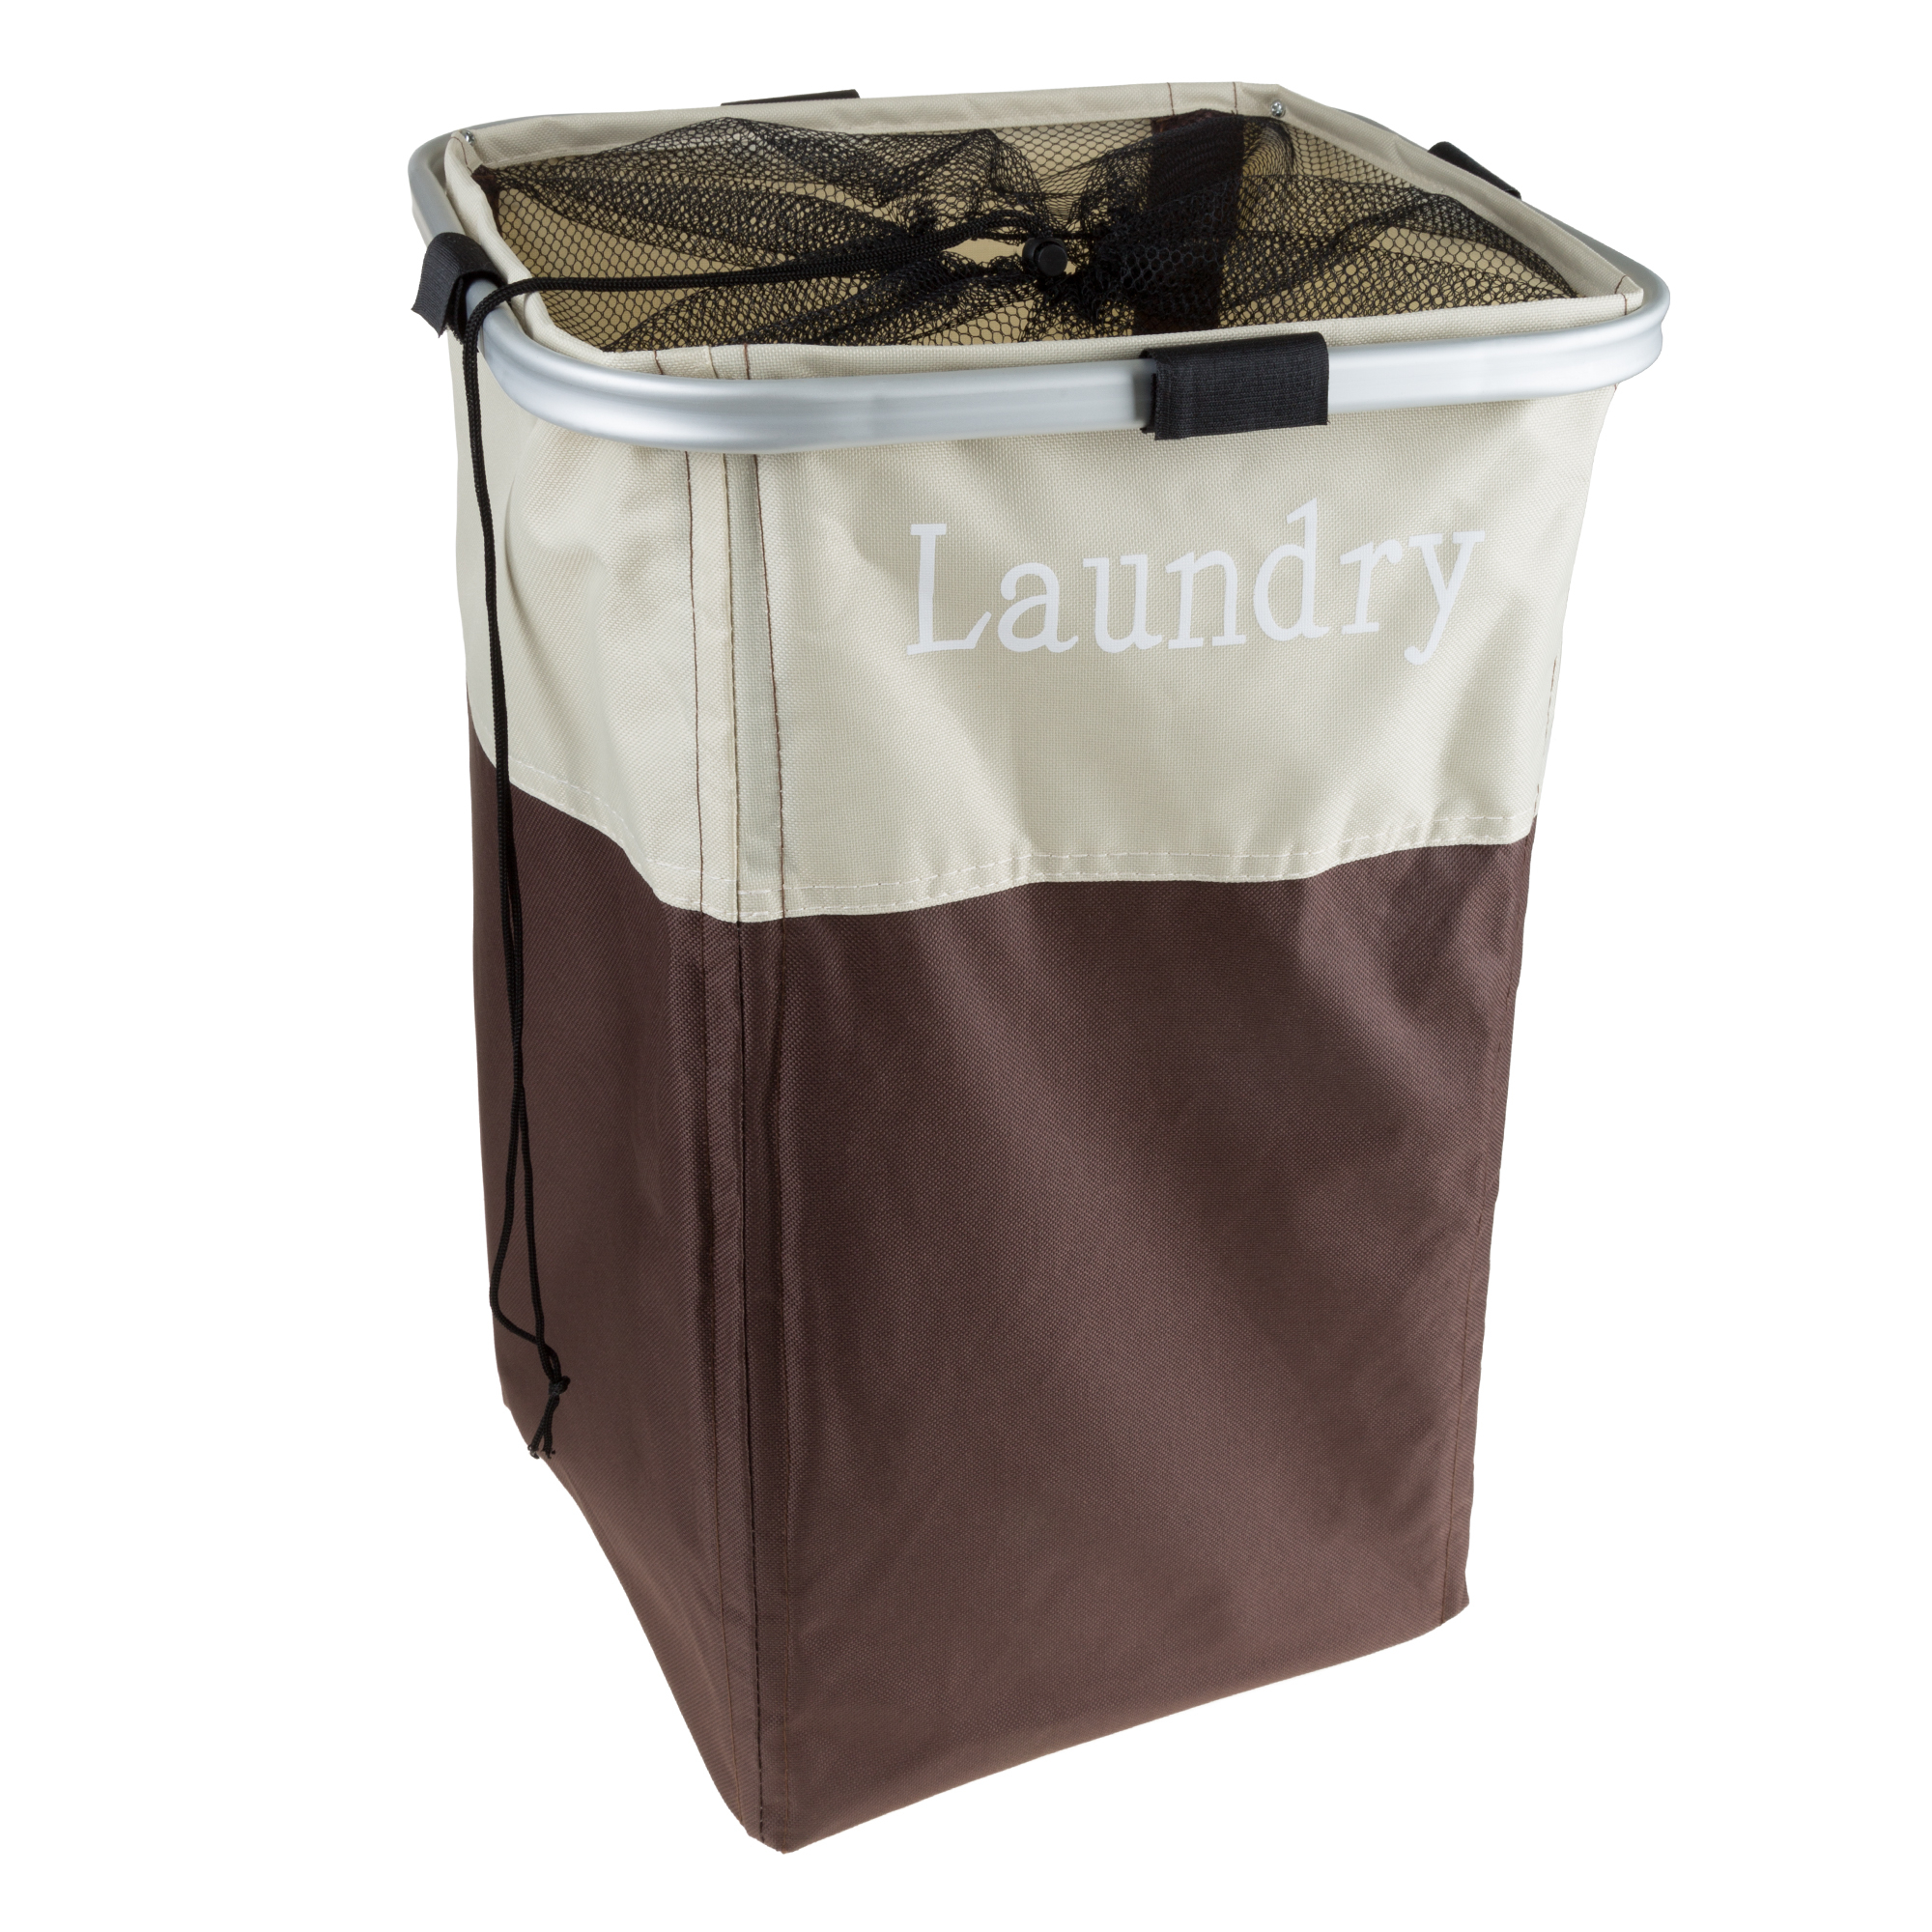 Laundry Hamper 14 x 13 x 20 inch H Collapsible Large Canvas Clothes Basket